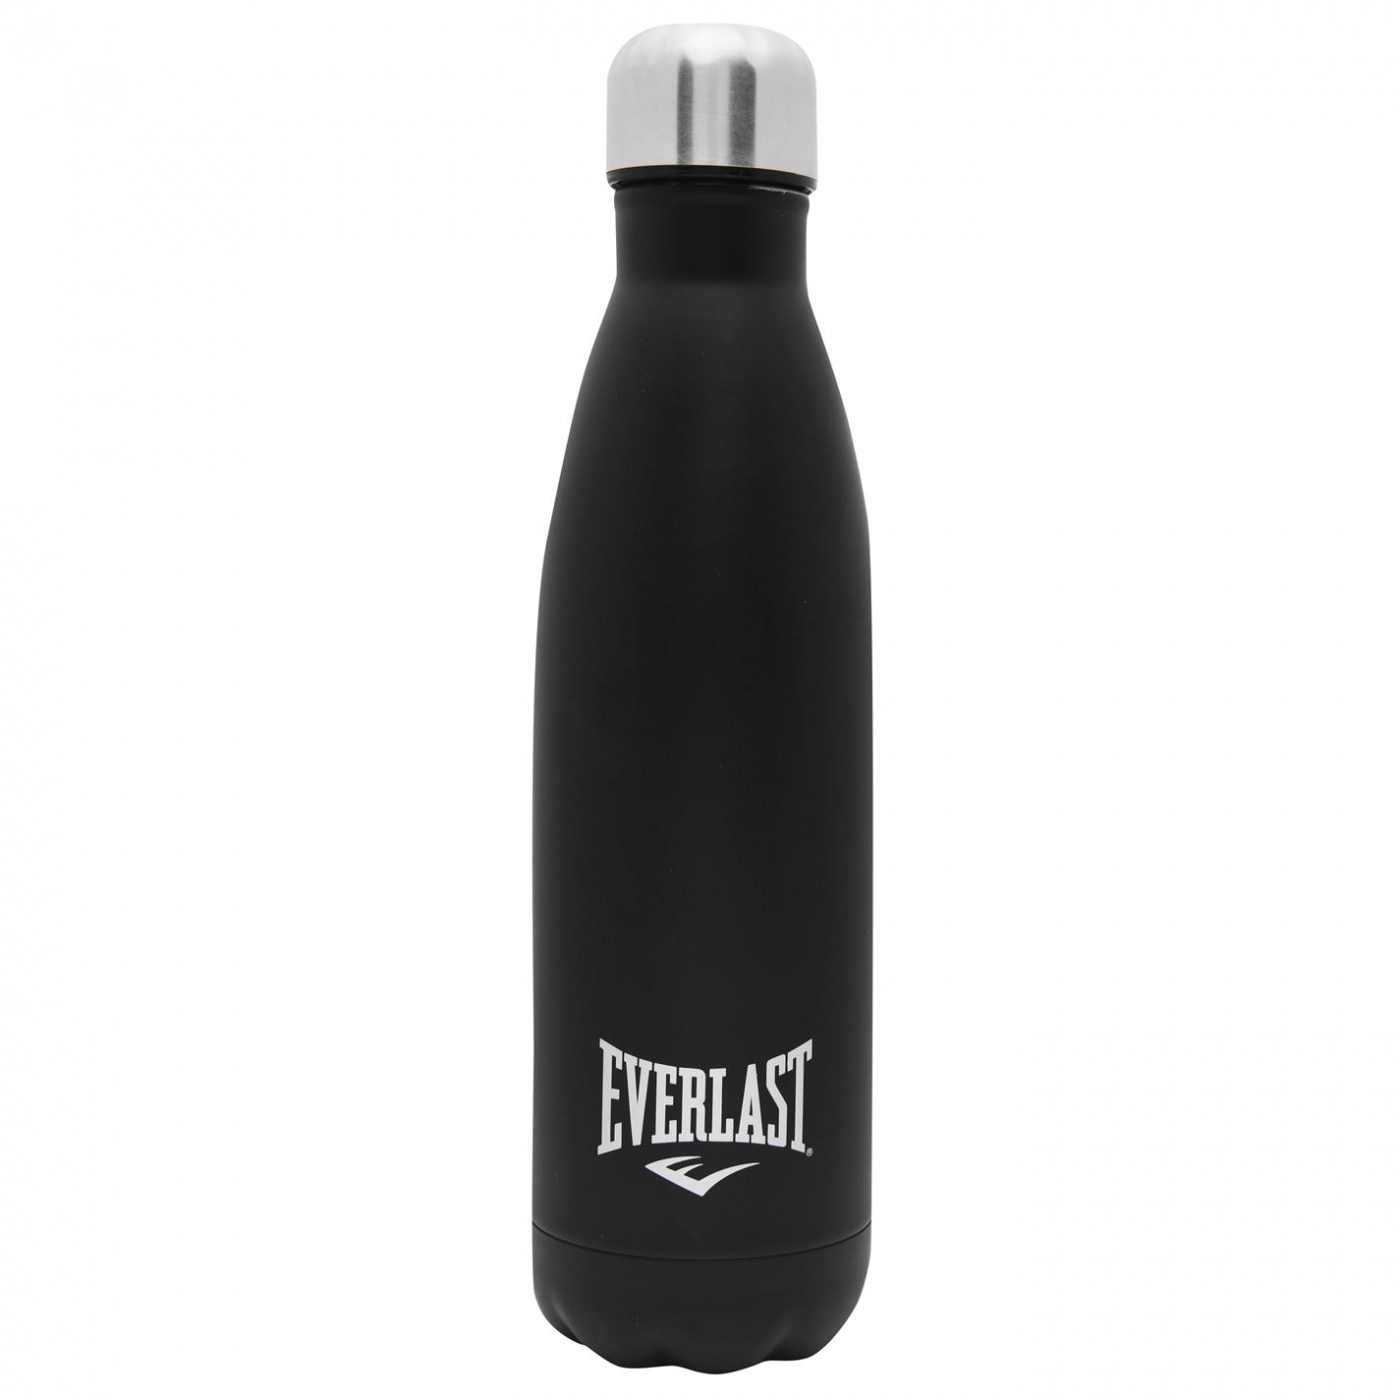 Everlast Stainless Steel Waterbottle